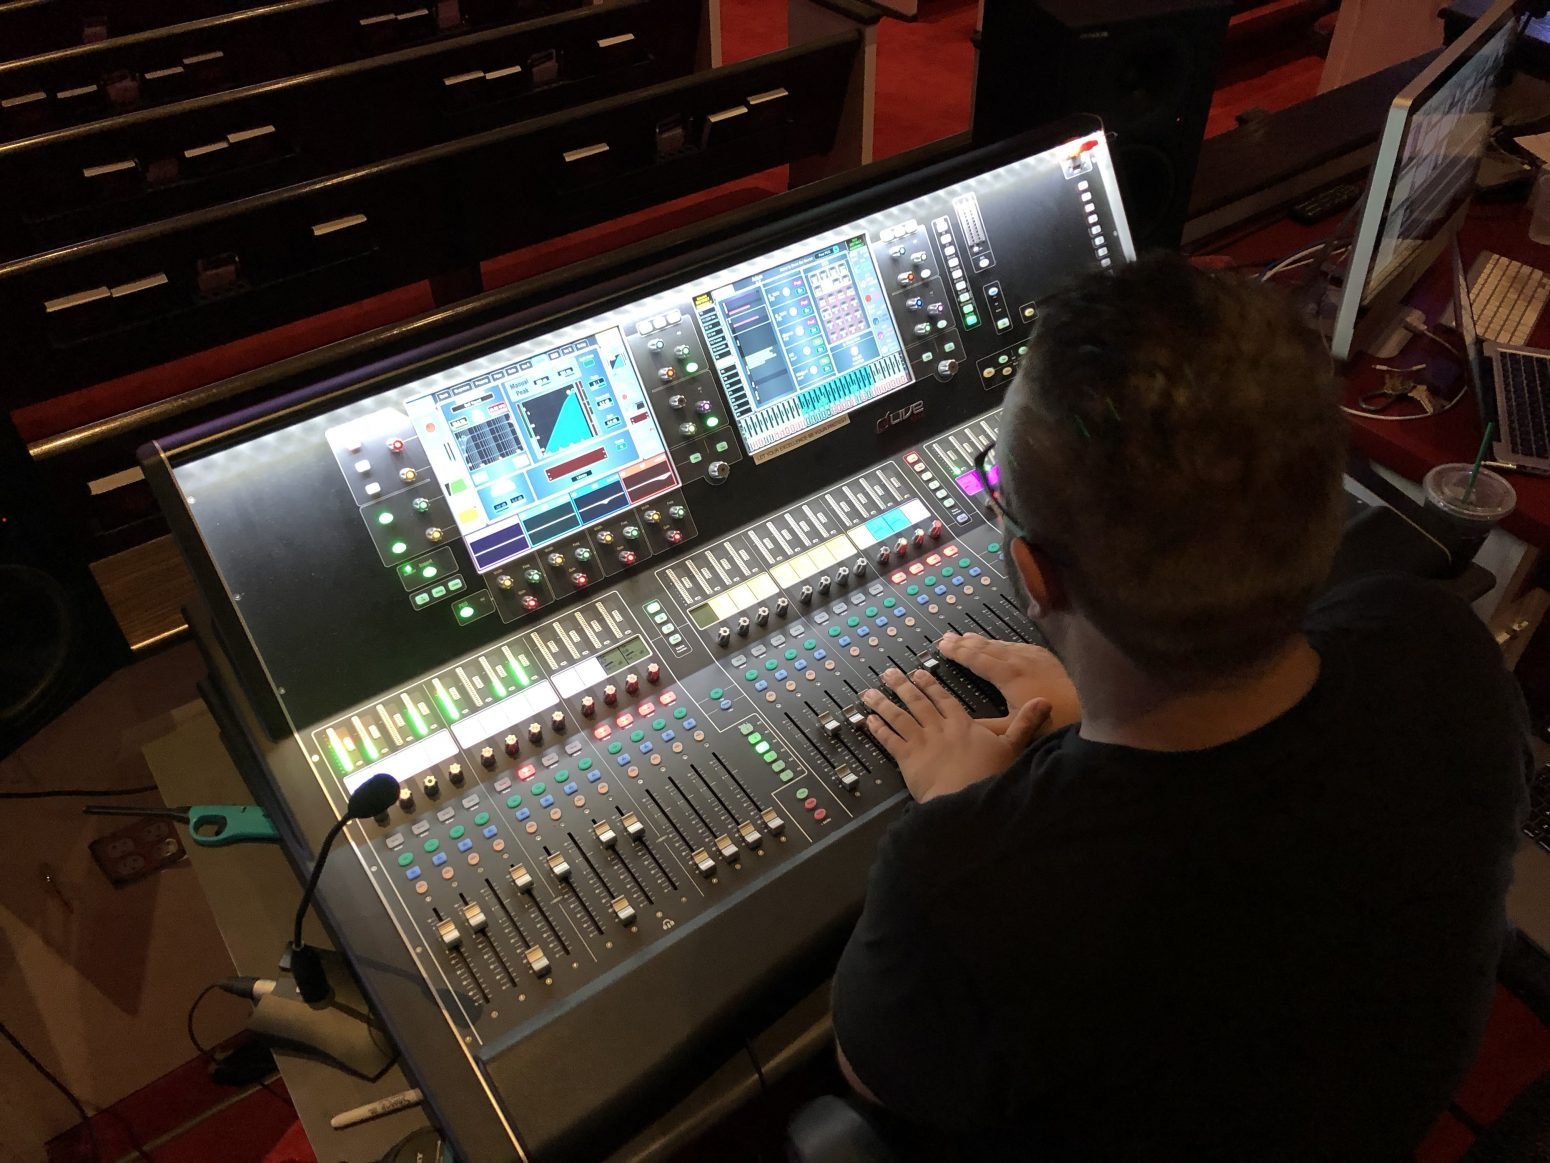 AVL sound is no problem with the right sound design equipment, like this sound board.